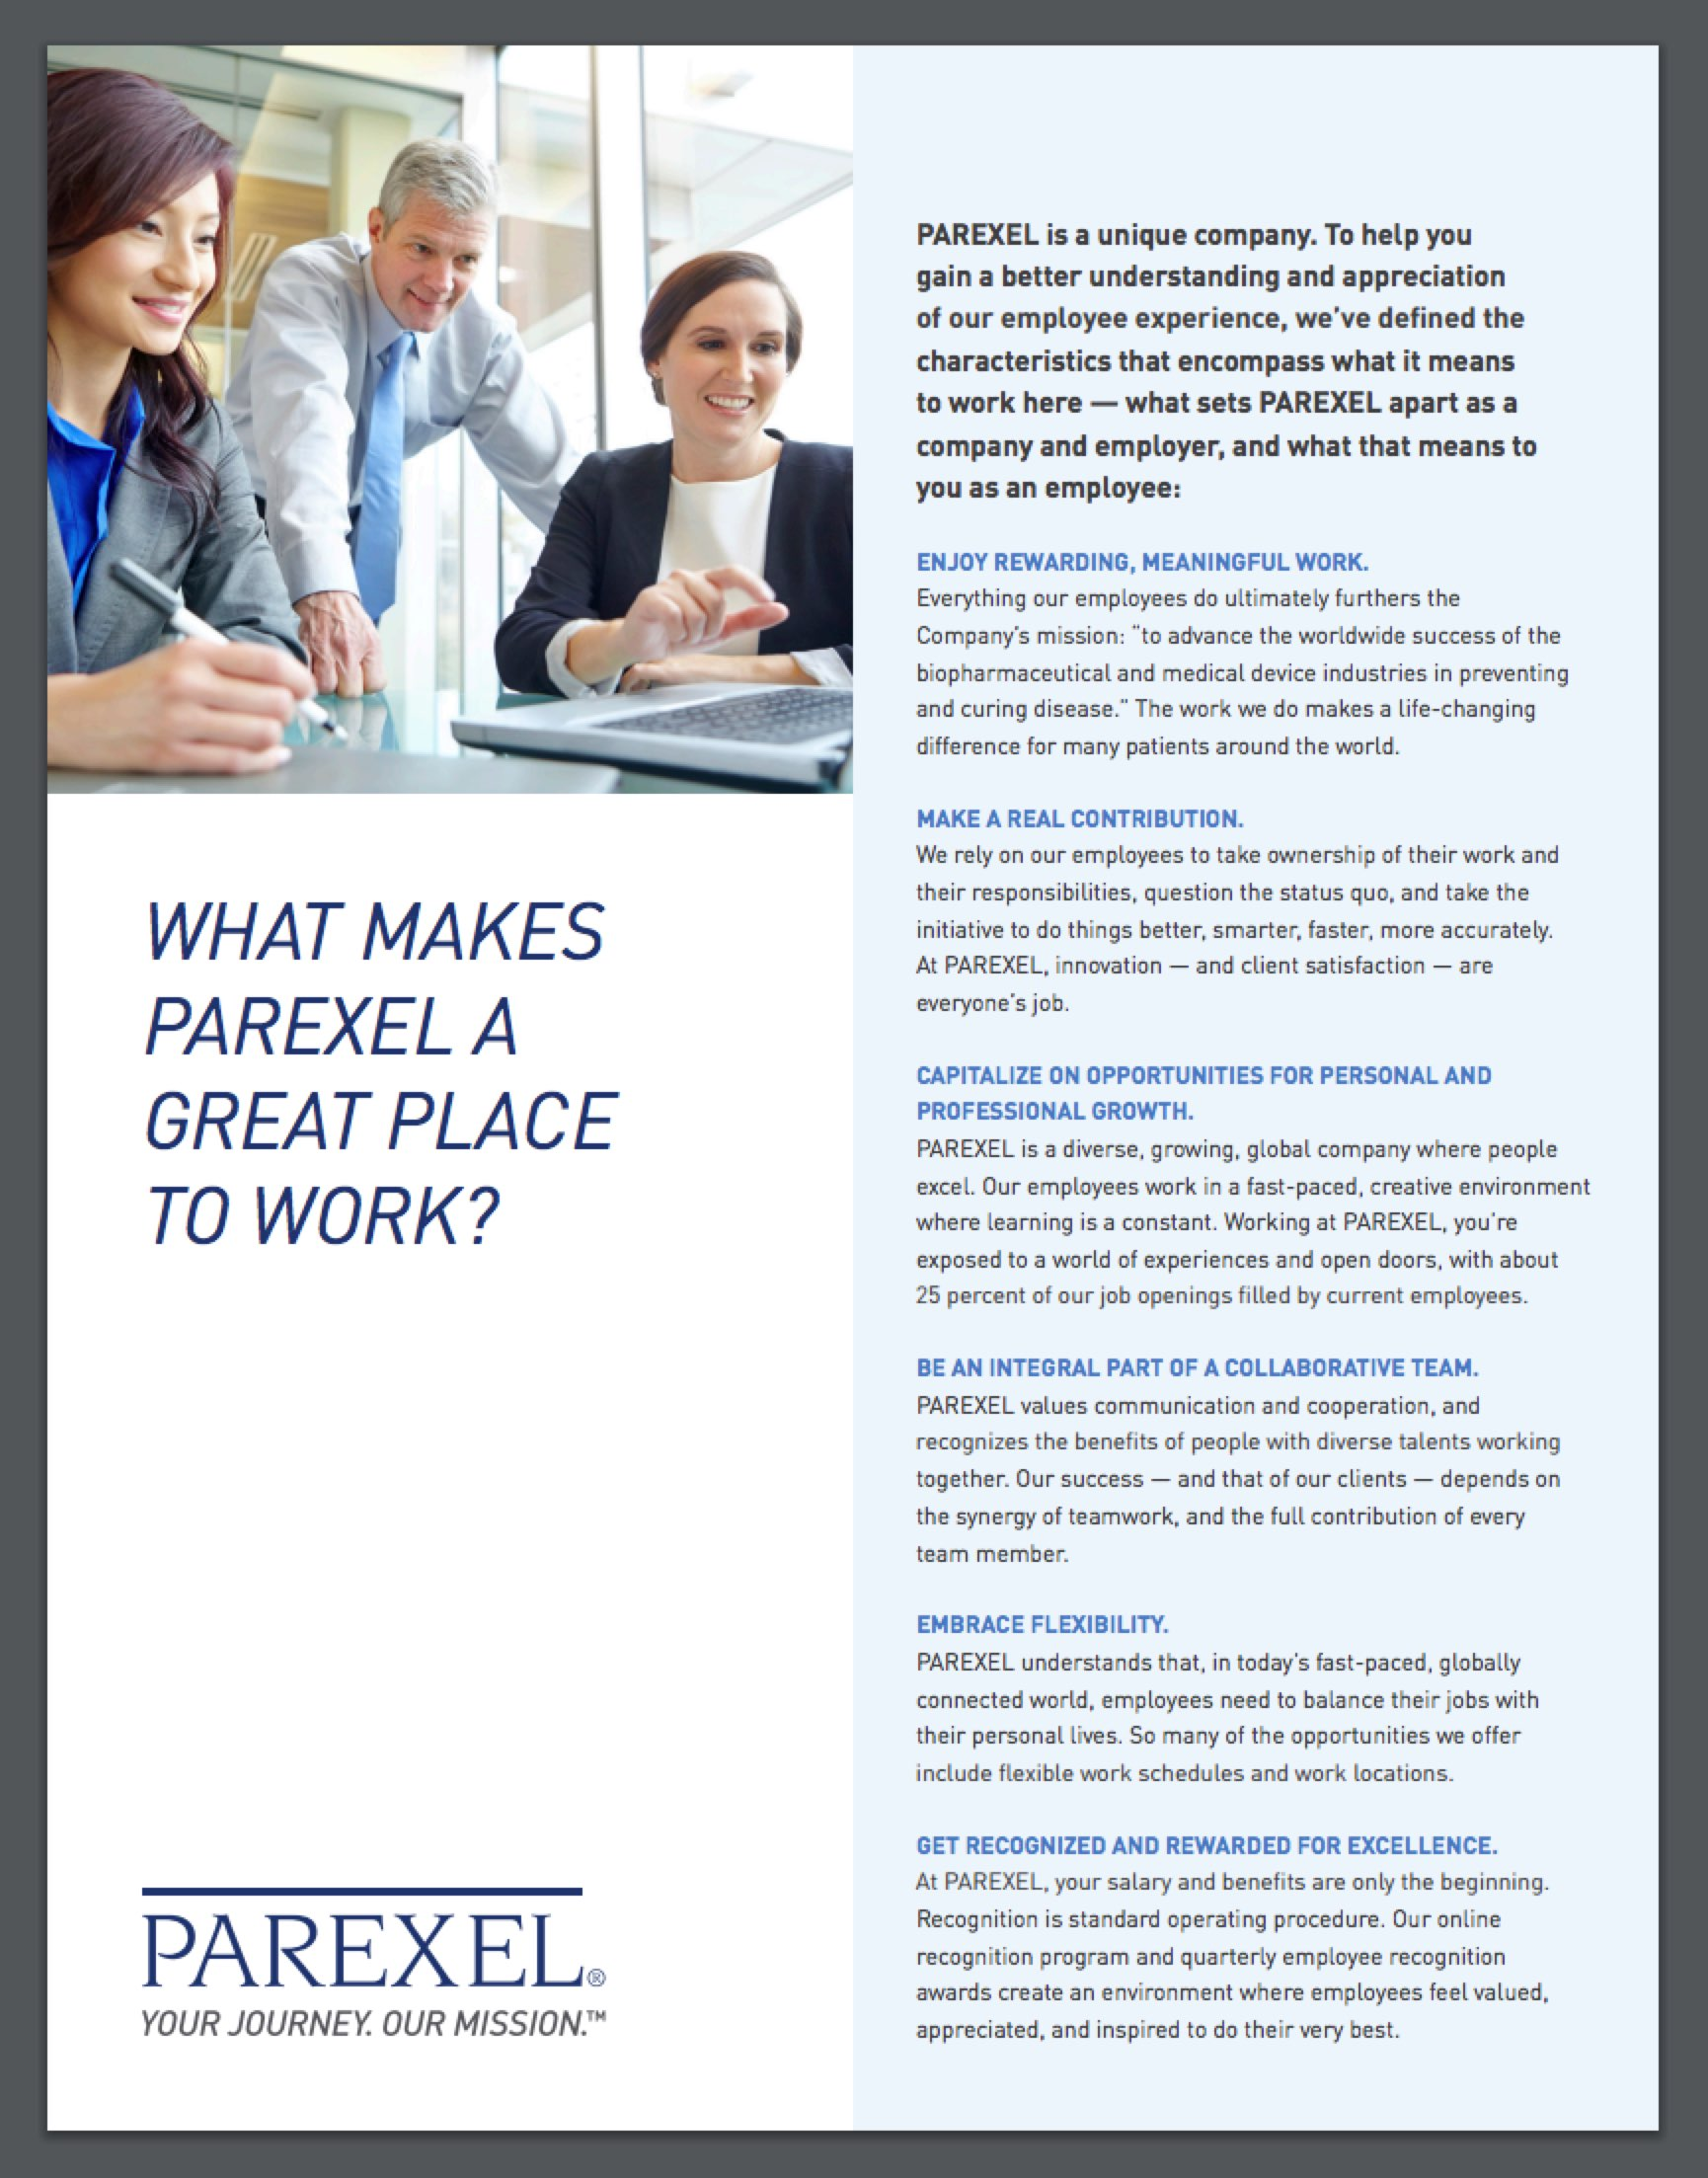 employee-value-proposition-evp-example-from-parexel-company-career-site